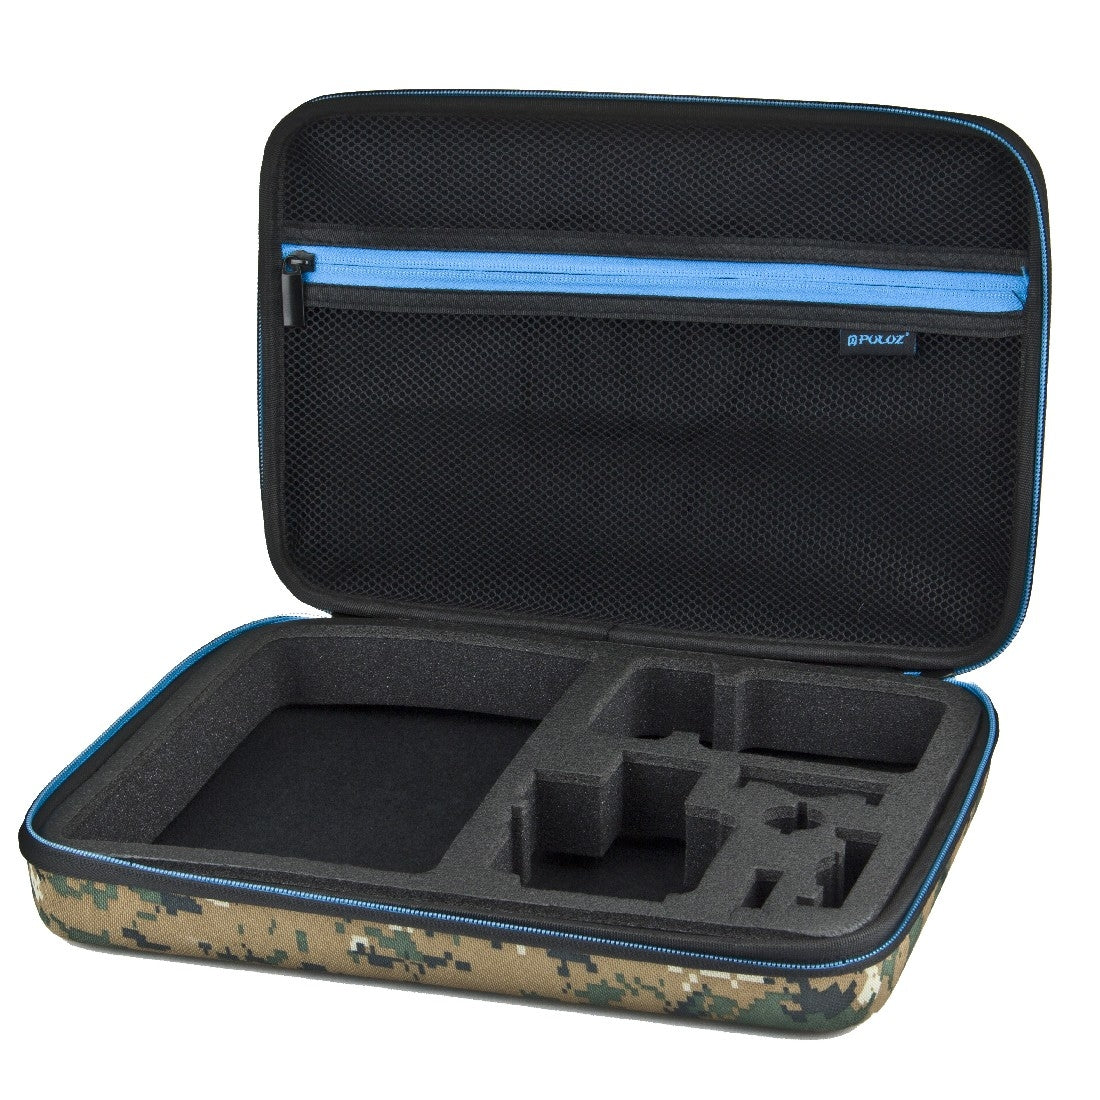 PULUZ PU169 Camouflage Pattern Waterproof Carrying Travel Storage Case Box for Action Sportscamera